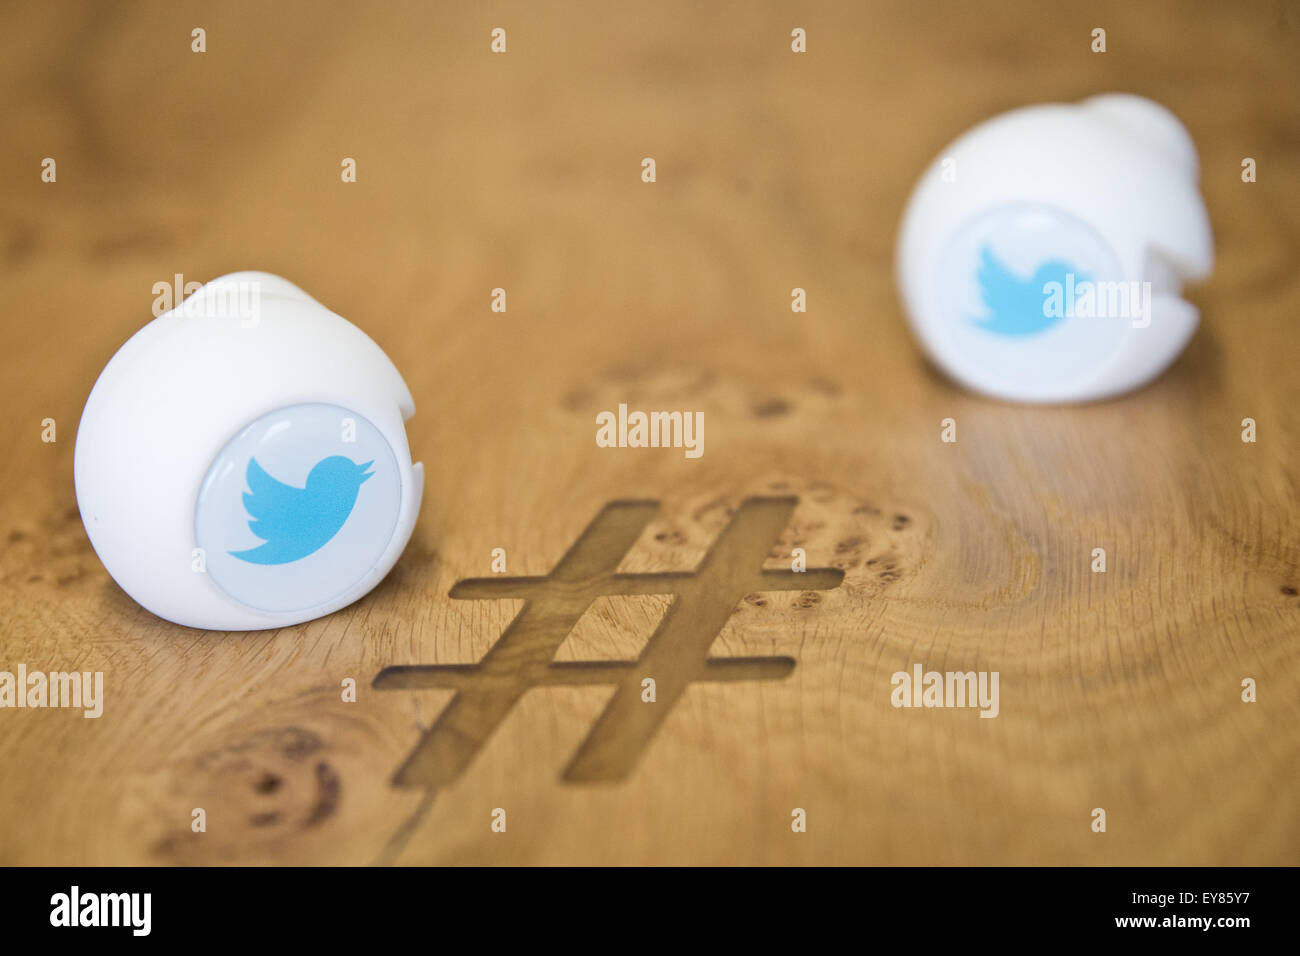 Gadgets With The Logo Of Social Media Service Twitter Are Seen On A